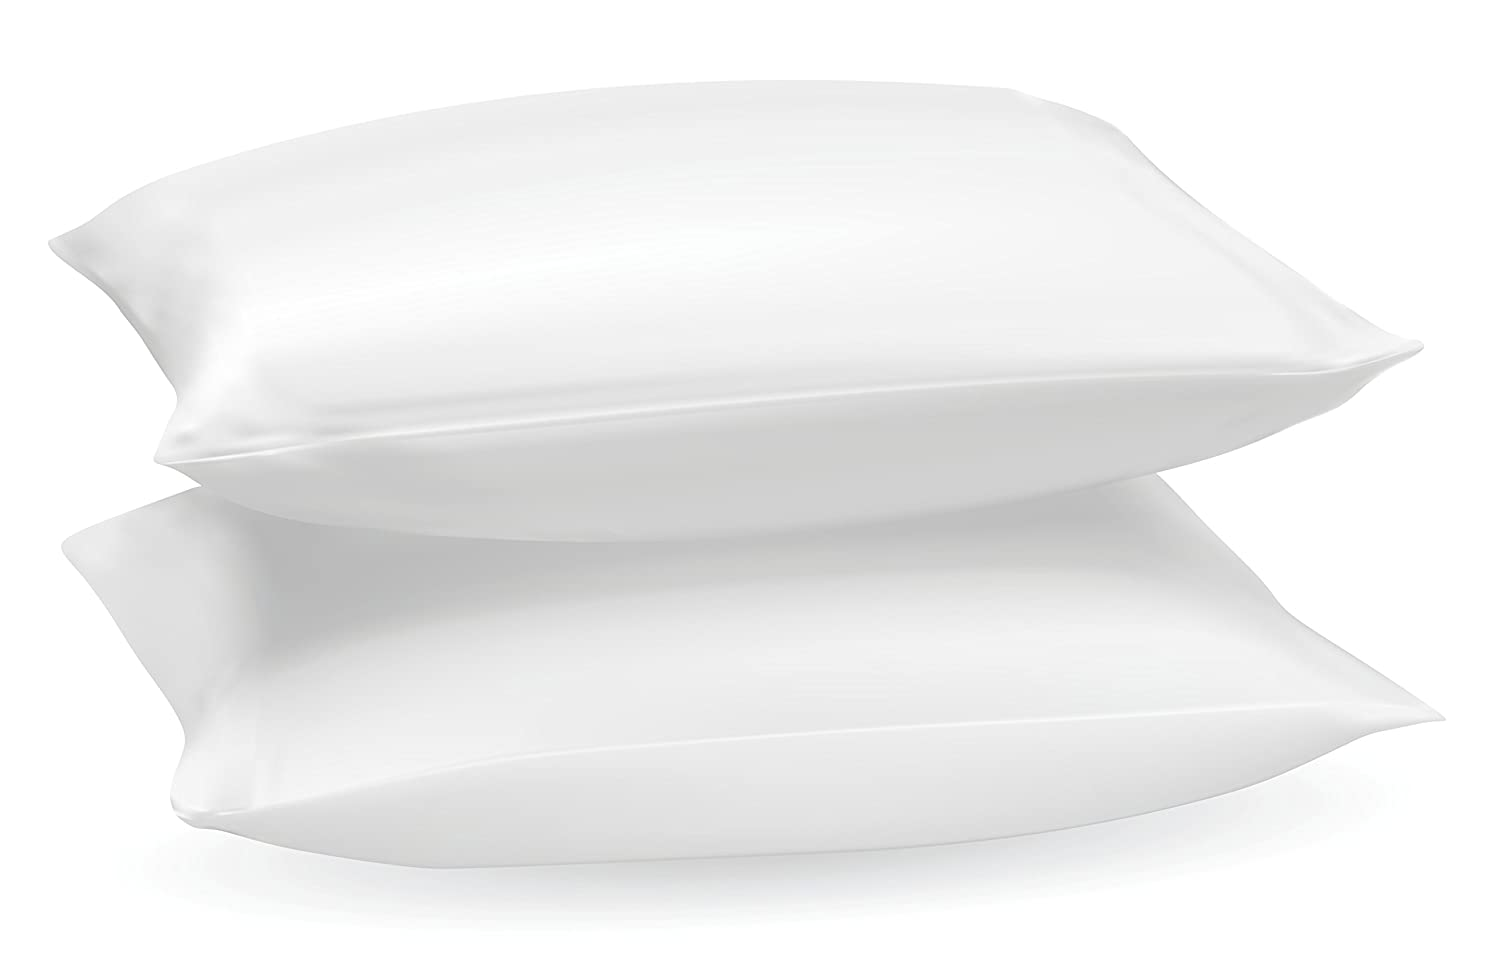 AR Textile's 2x & 4x Large & Comfortable Hotel Quality Duck Feather and Down Pillows, Comfortable Extra Filling Hotel Quality Pair of Pillows, Anti Dust Mite - Washable - Medium / Soft Firmness - 100% Cotton Downproof Cover (Pack of 2) bedding stu